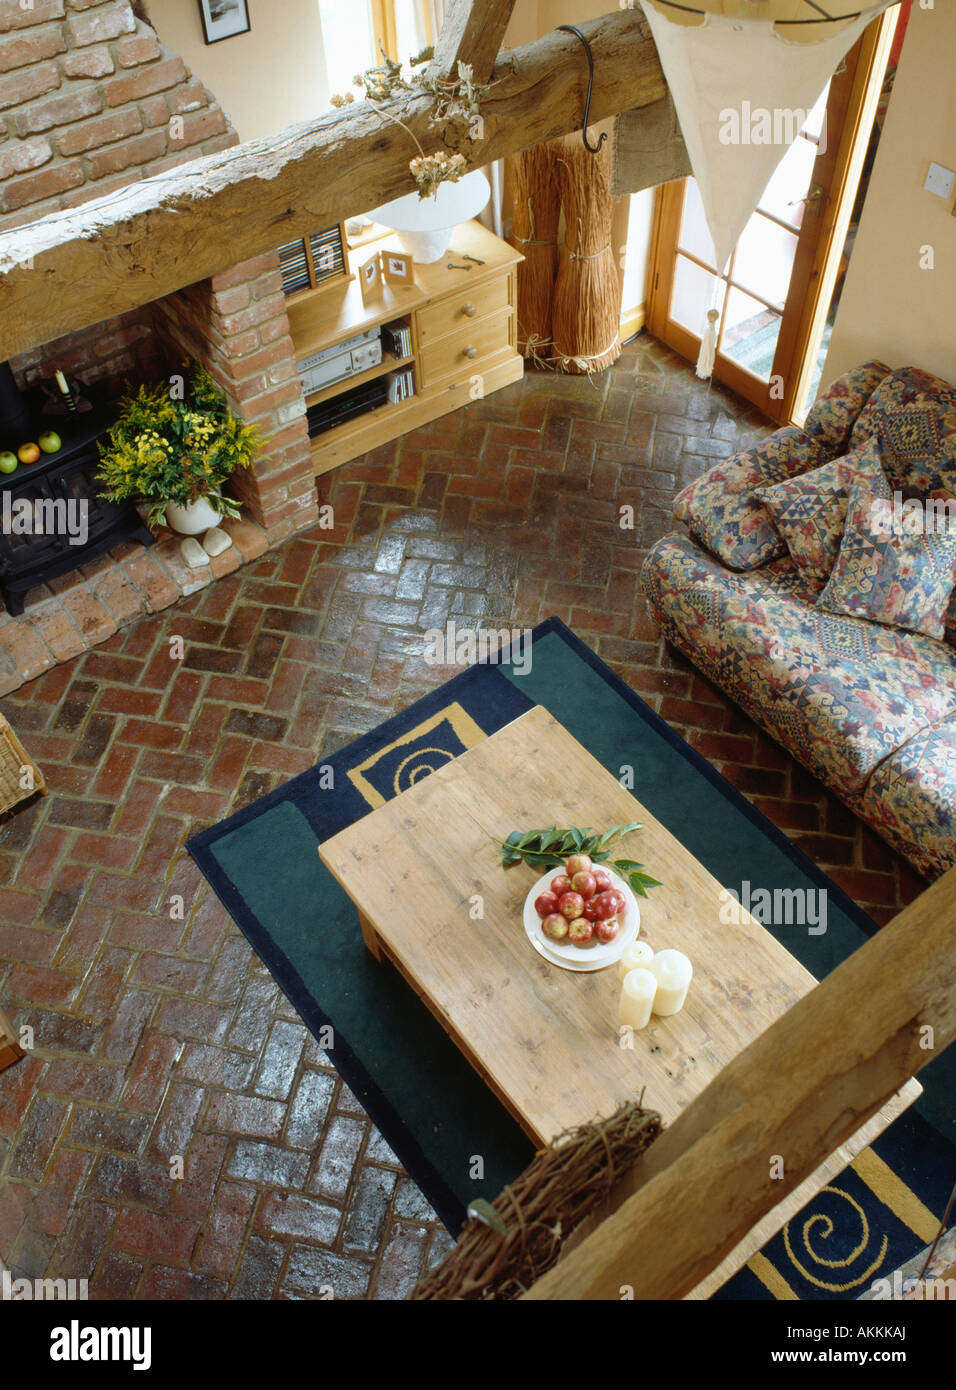 Aerial View Of Pine Table On Herringbone Pattern Reclaimed Brick Floor In Country Living Room